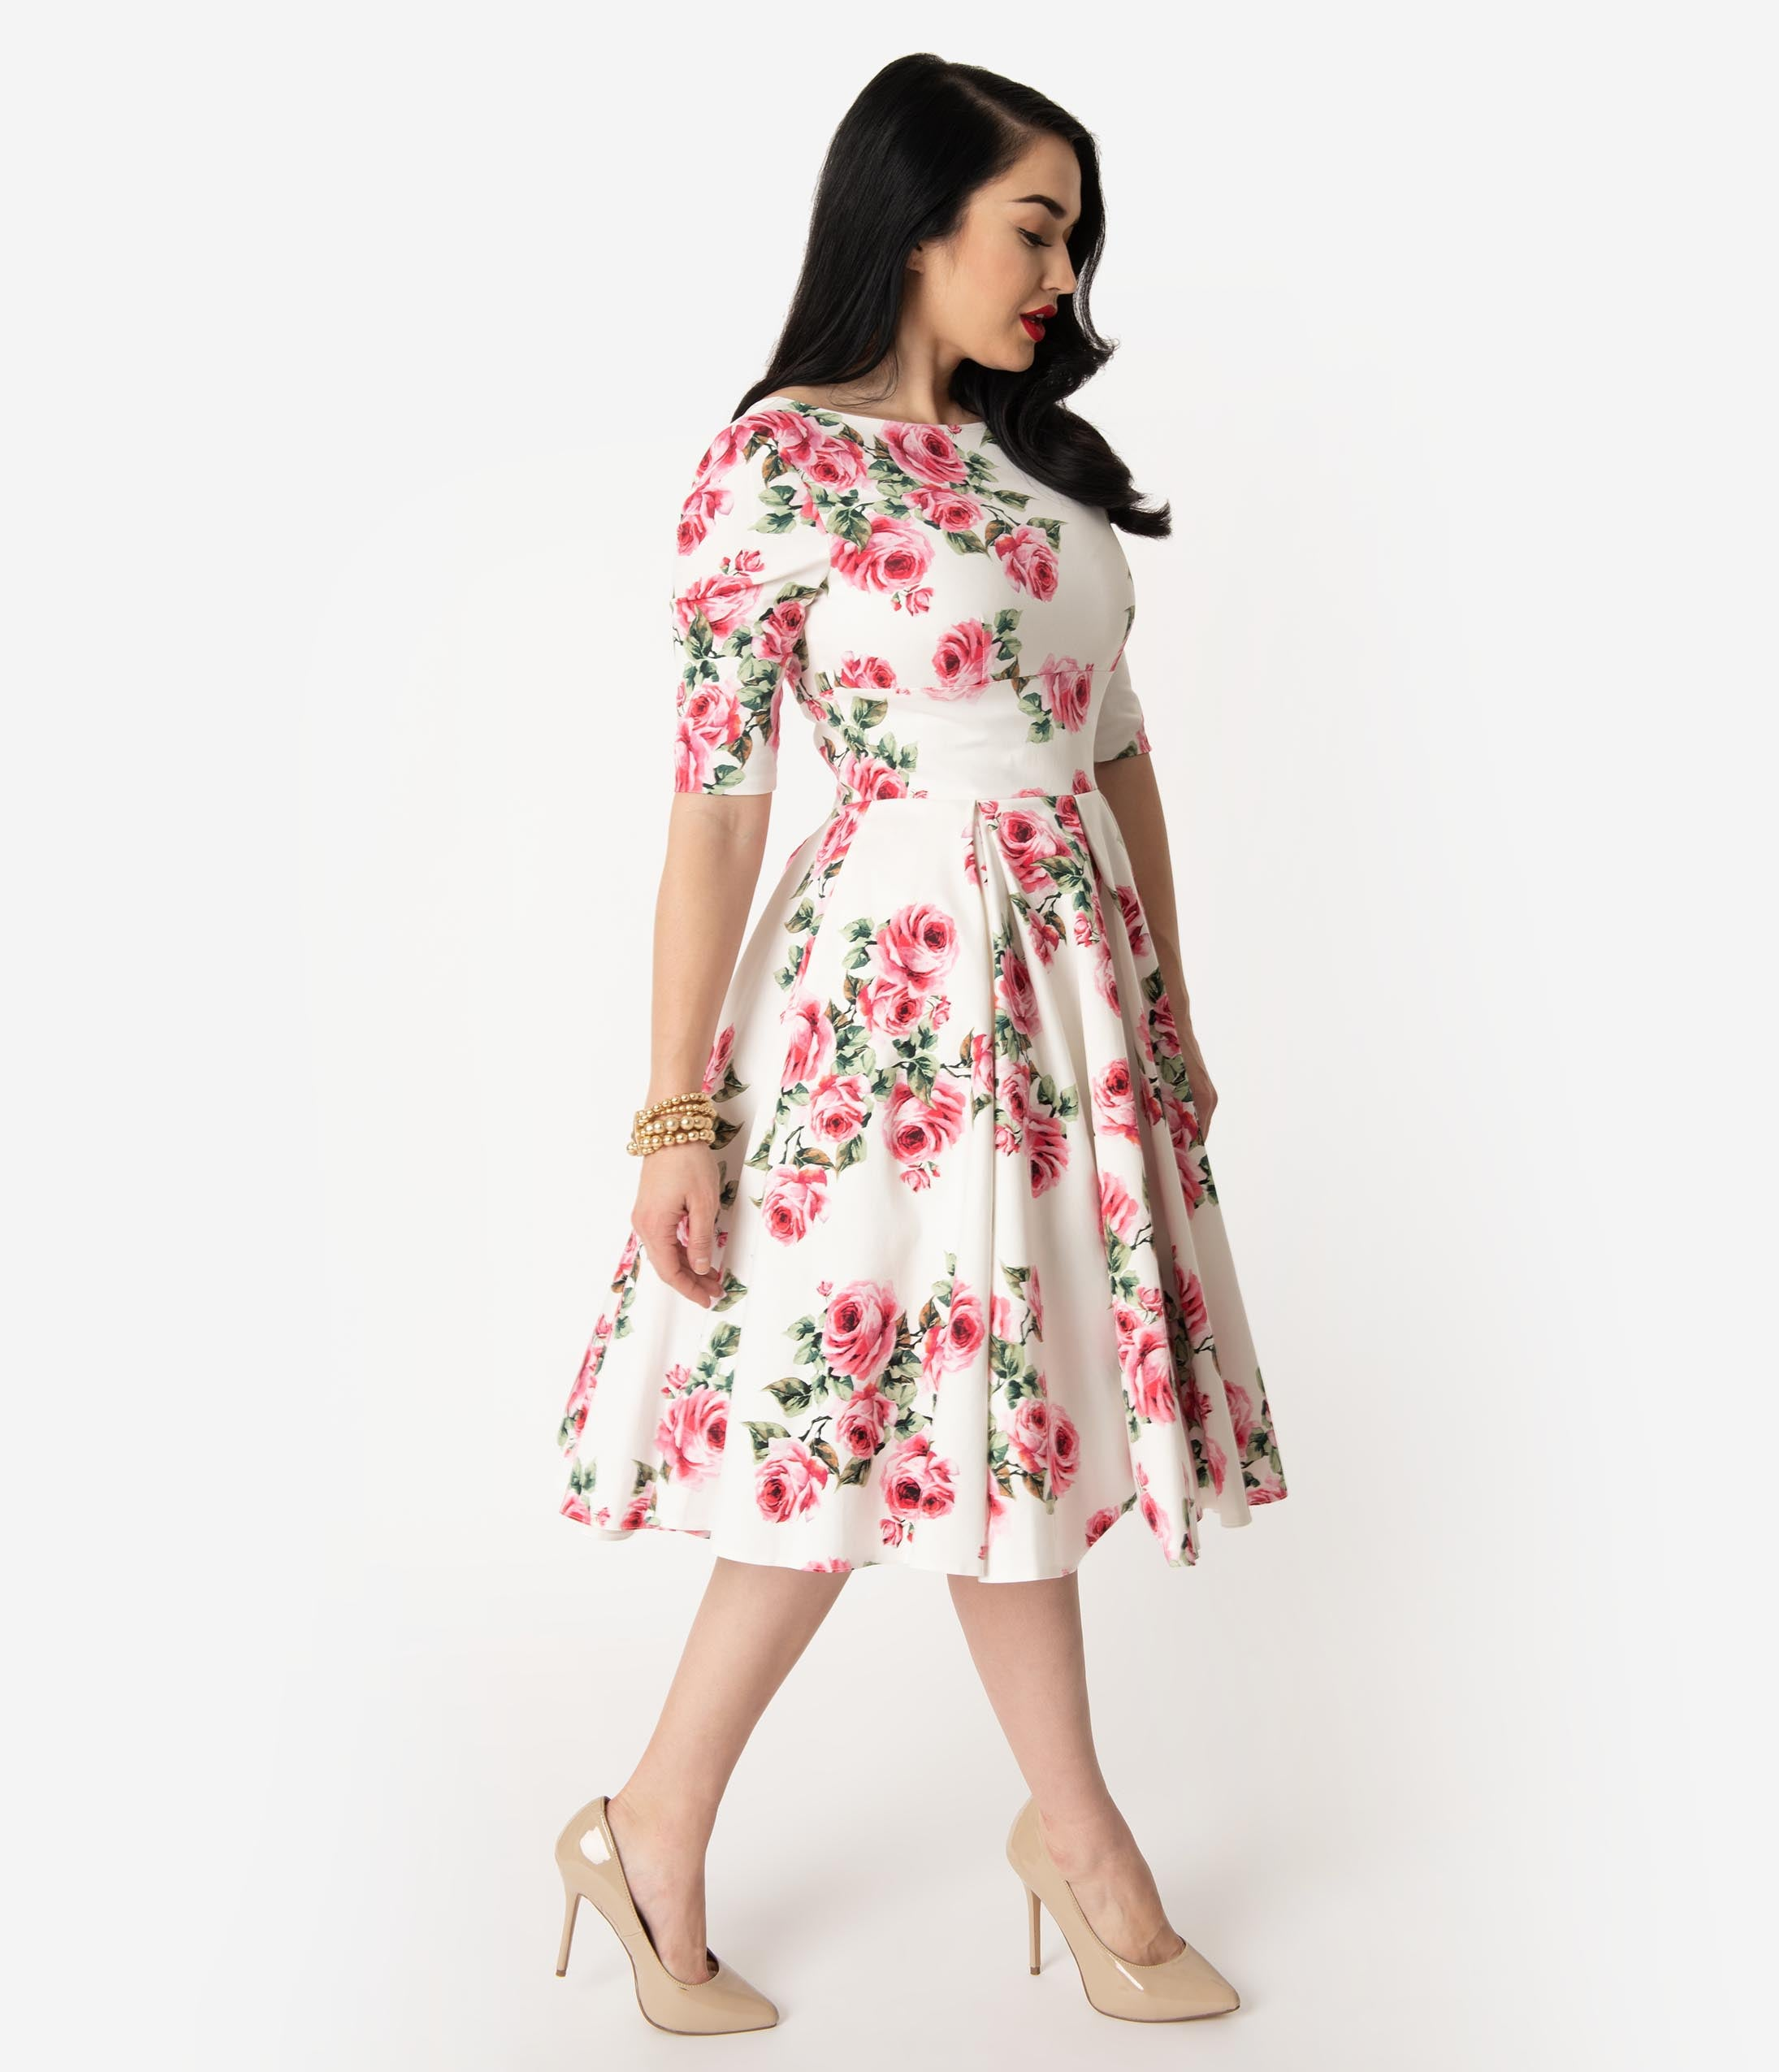 eccc1a45792 The Pretty Dress Company White   Pink Vintage Rose Print Sleeved Hepburn  Swing Dress